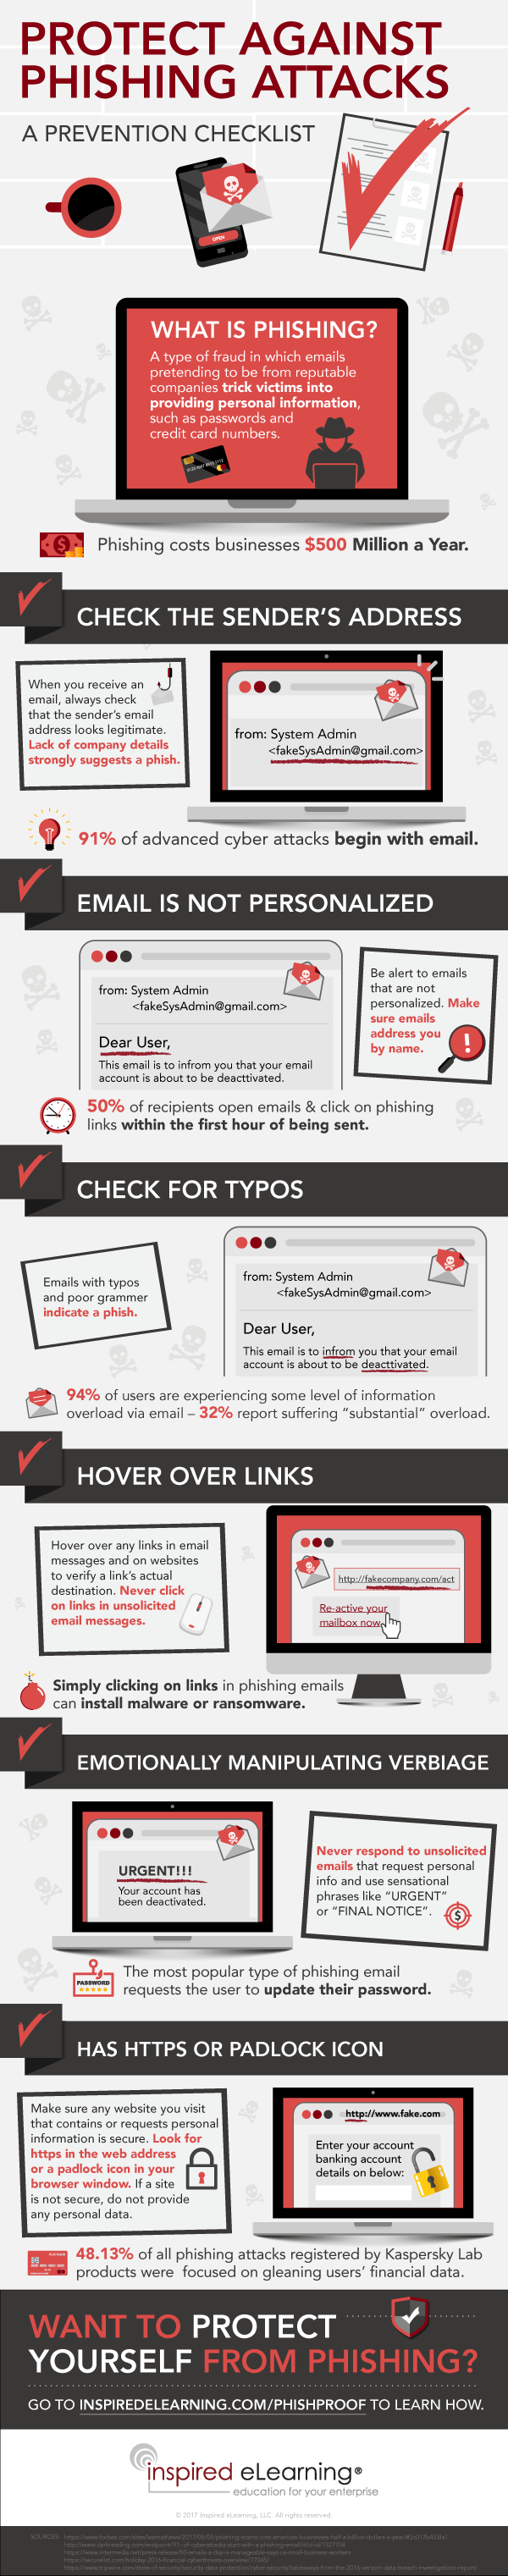 How-to-protect-yourself-against-phishing-attacks-infographic-b9d0f99fcd96a8a81779e9260820b8272557f4a5